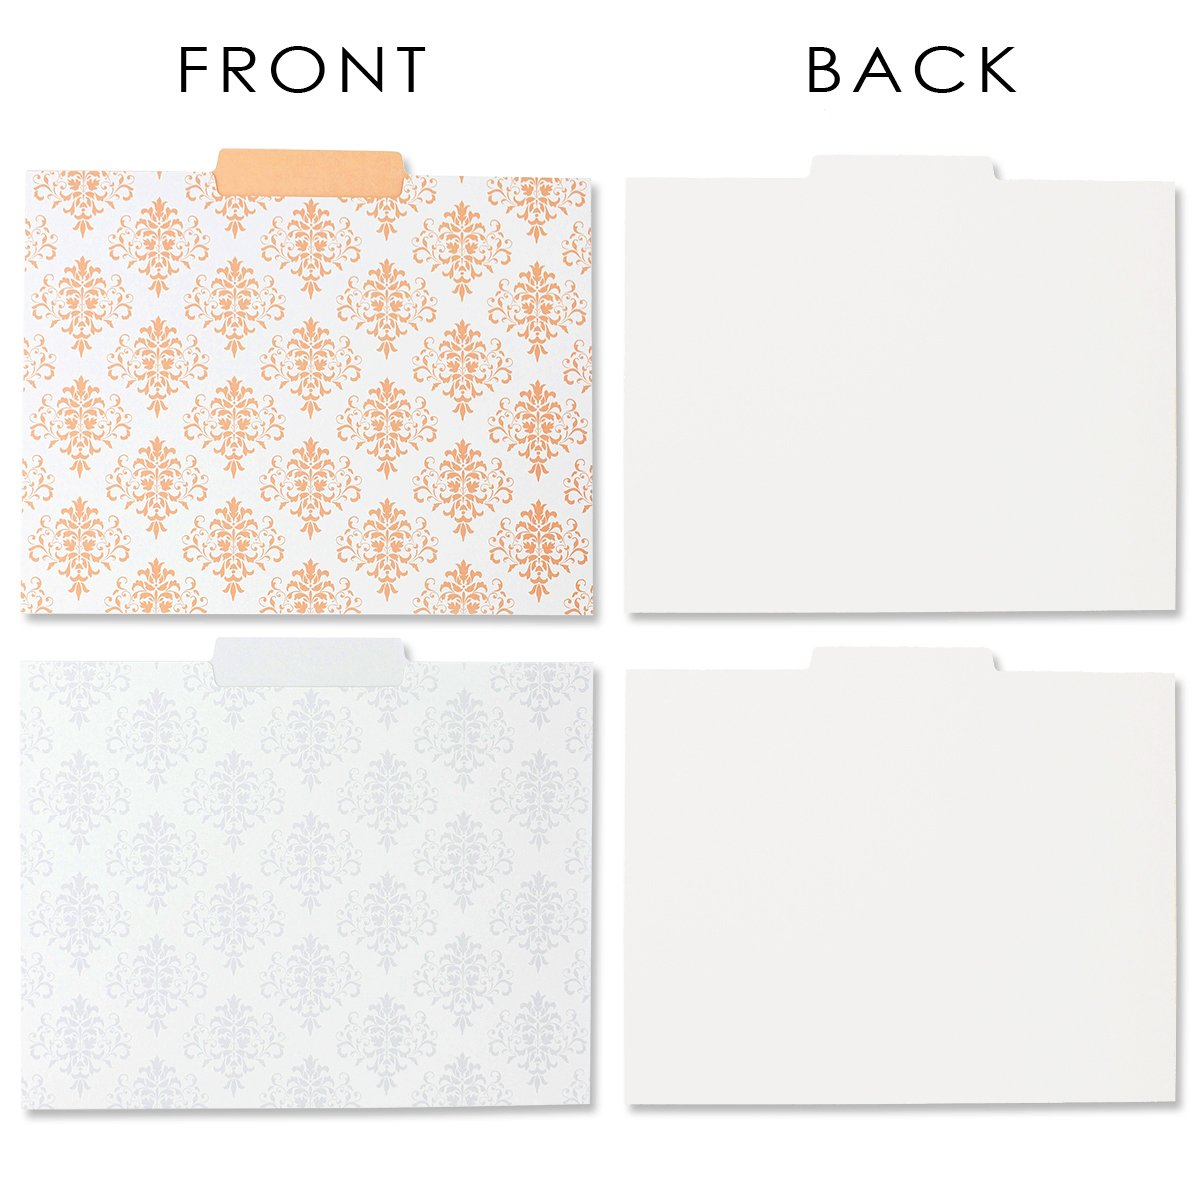 Decorative File Folders - 12-Count Colored File Folders Letter Size, 1/3-Cut Tabs, Includes 6 Cute Damask Patterns, 2 of each, File Filing Organizers, 9.5 x 11.5 Inches by Best Paper Greetings (Image #4)